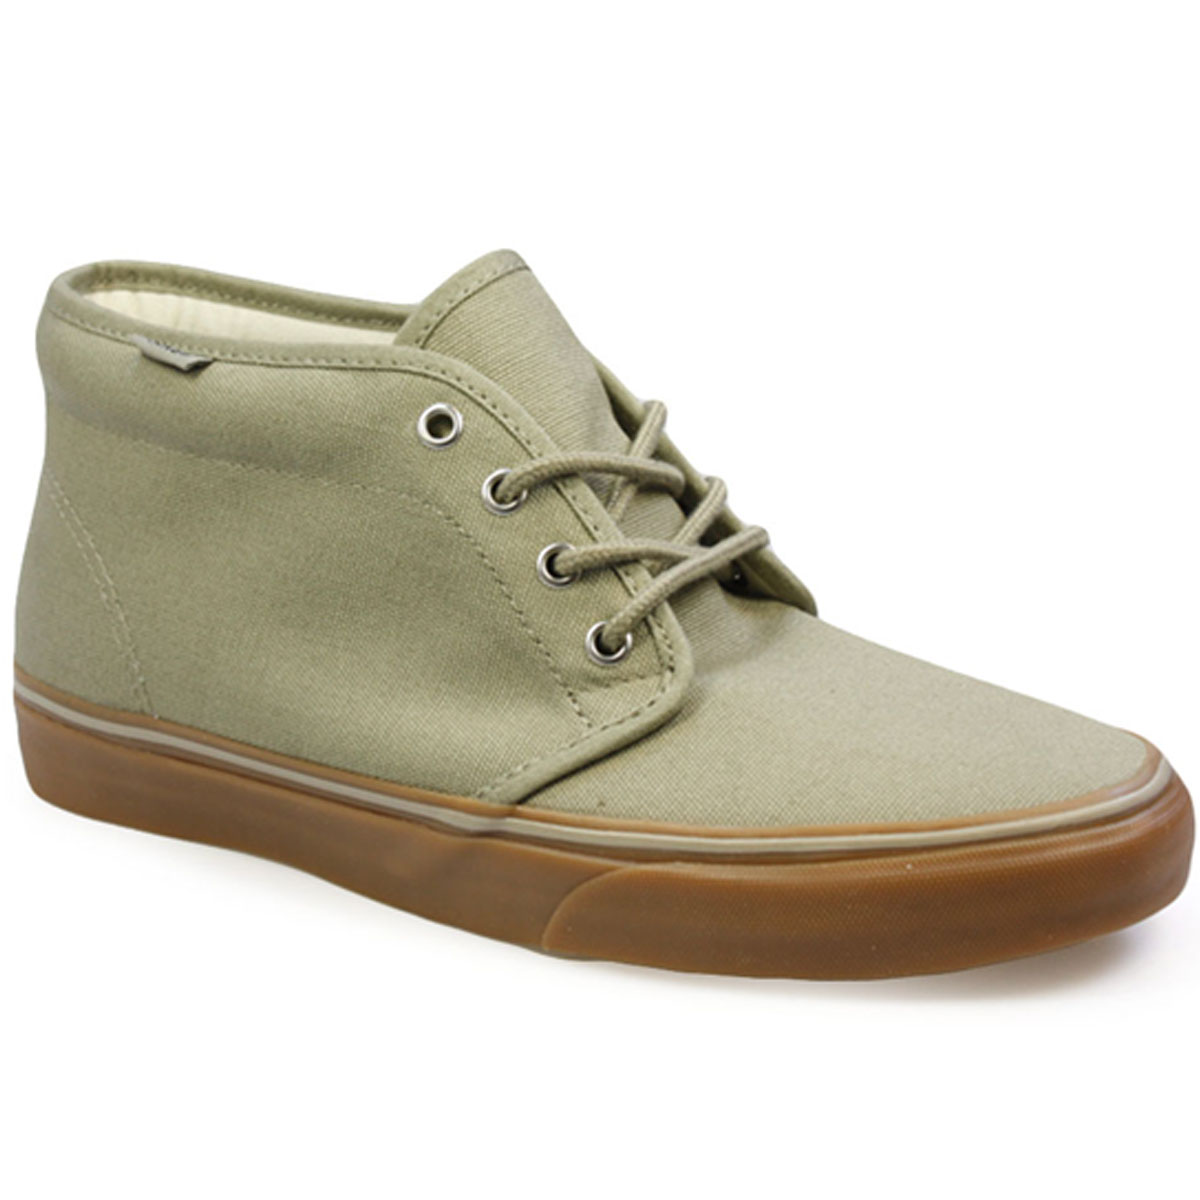 Vans-Chukka-Green-High-Top-Canvas-Mens-Womens-Trainers-Sneakers-Shoes